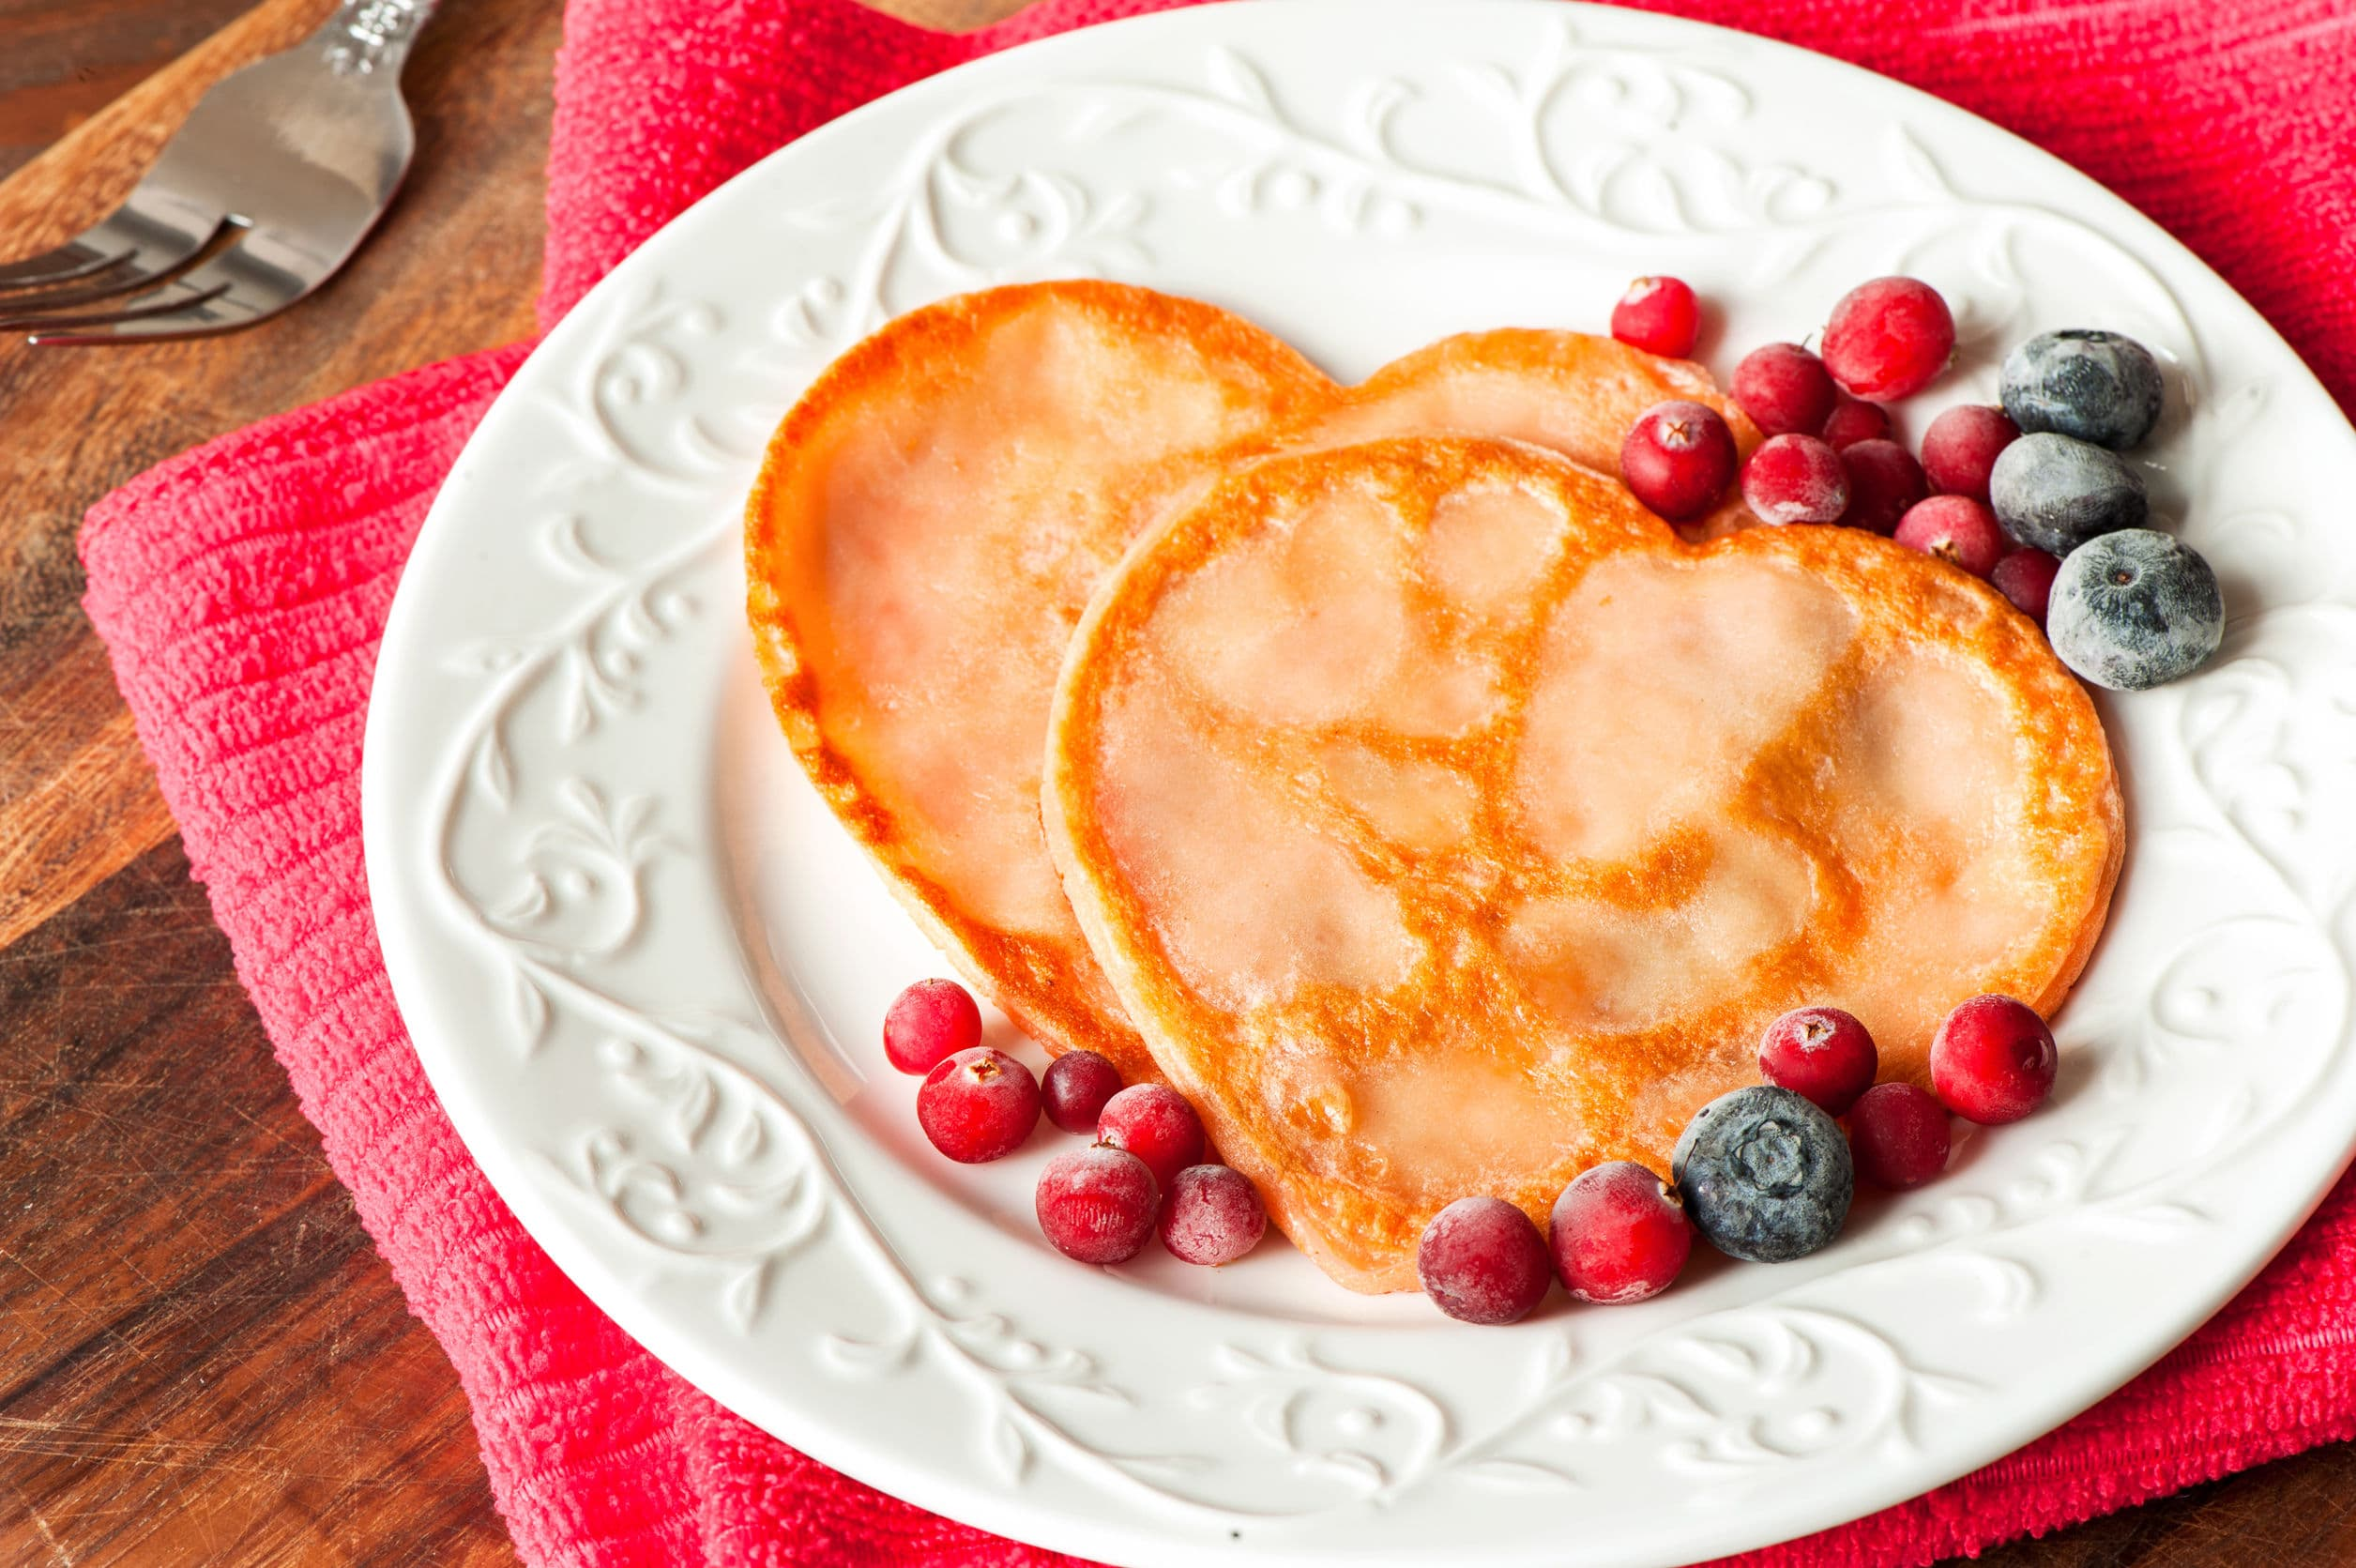 How To Make The Perfect Pancake On Your Griddle